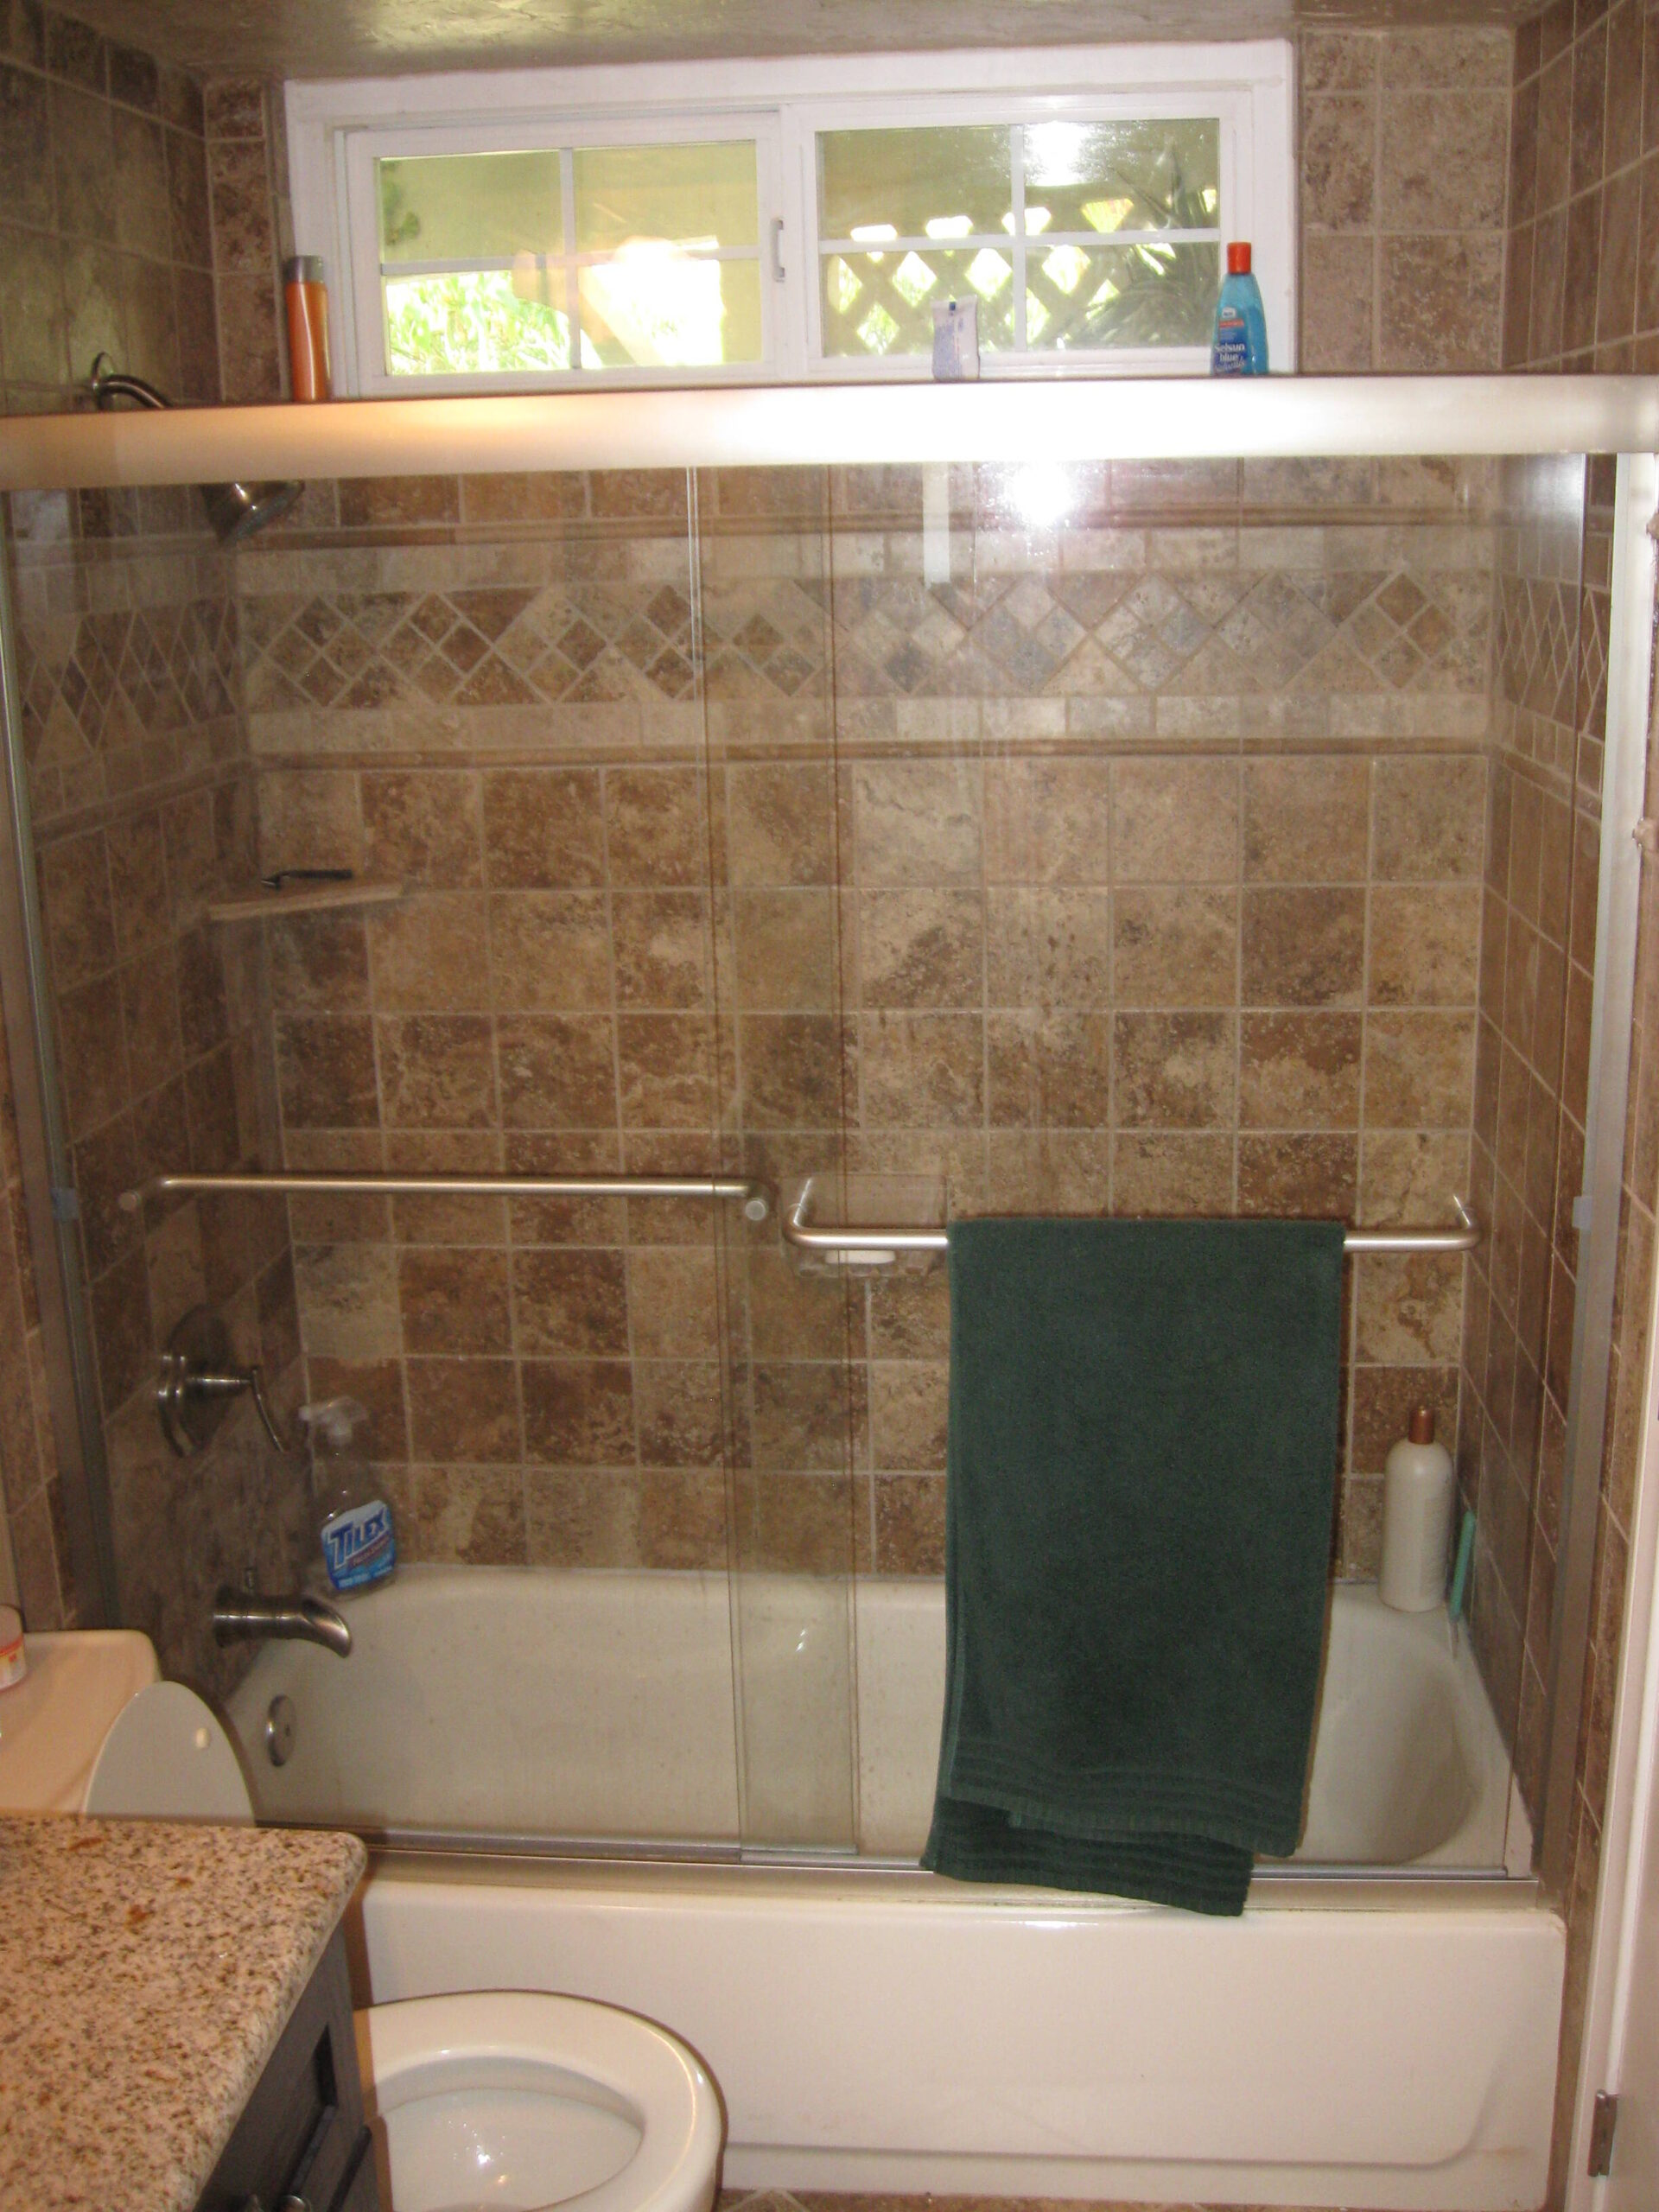 Bathtub Installation, Bathtub Plumbing Repair & Tub Door Install